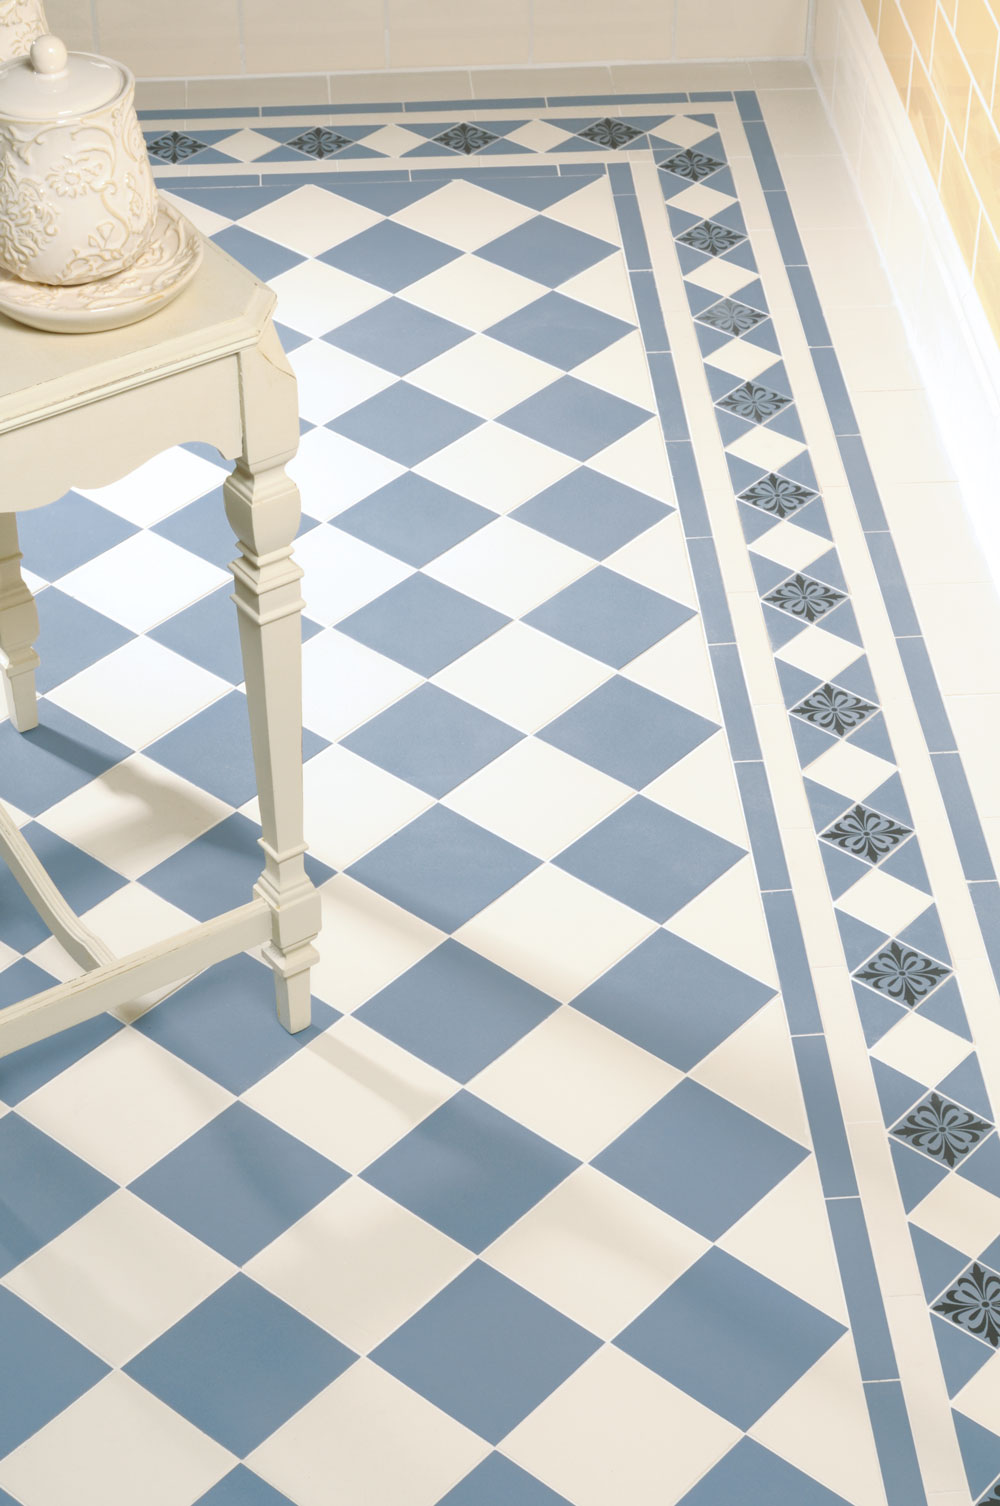 Floor tile gallery victorian floor tile gallery dailygadgetfo Choice Image